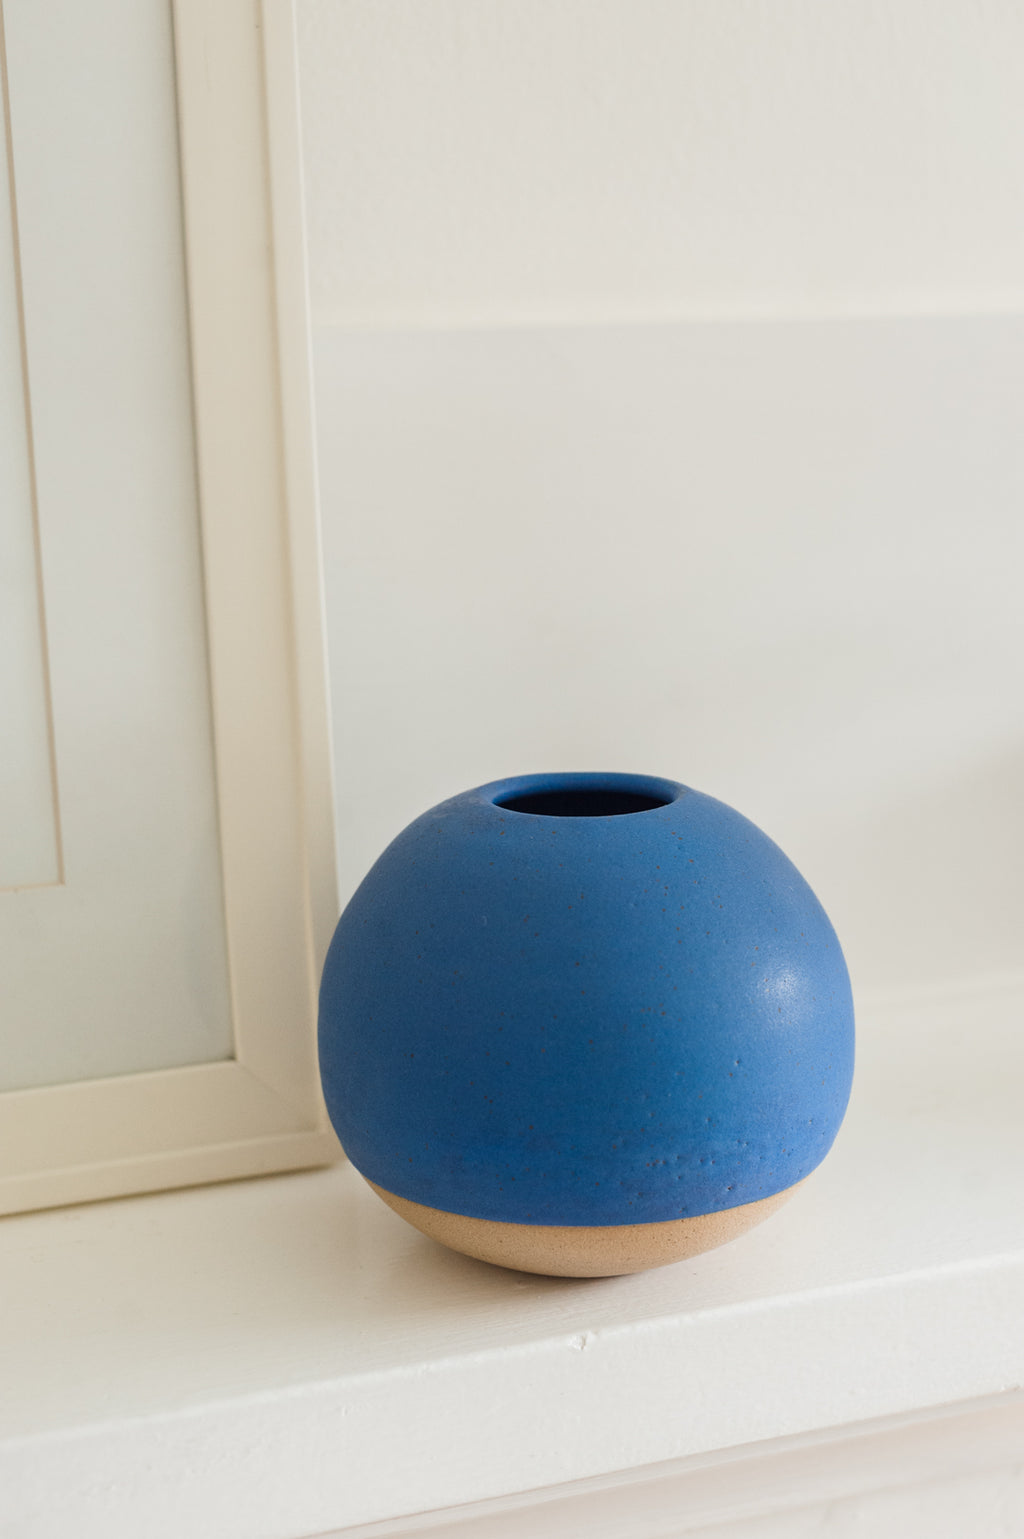 Cerulean Blue Vase by M. Bueno